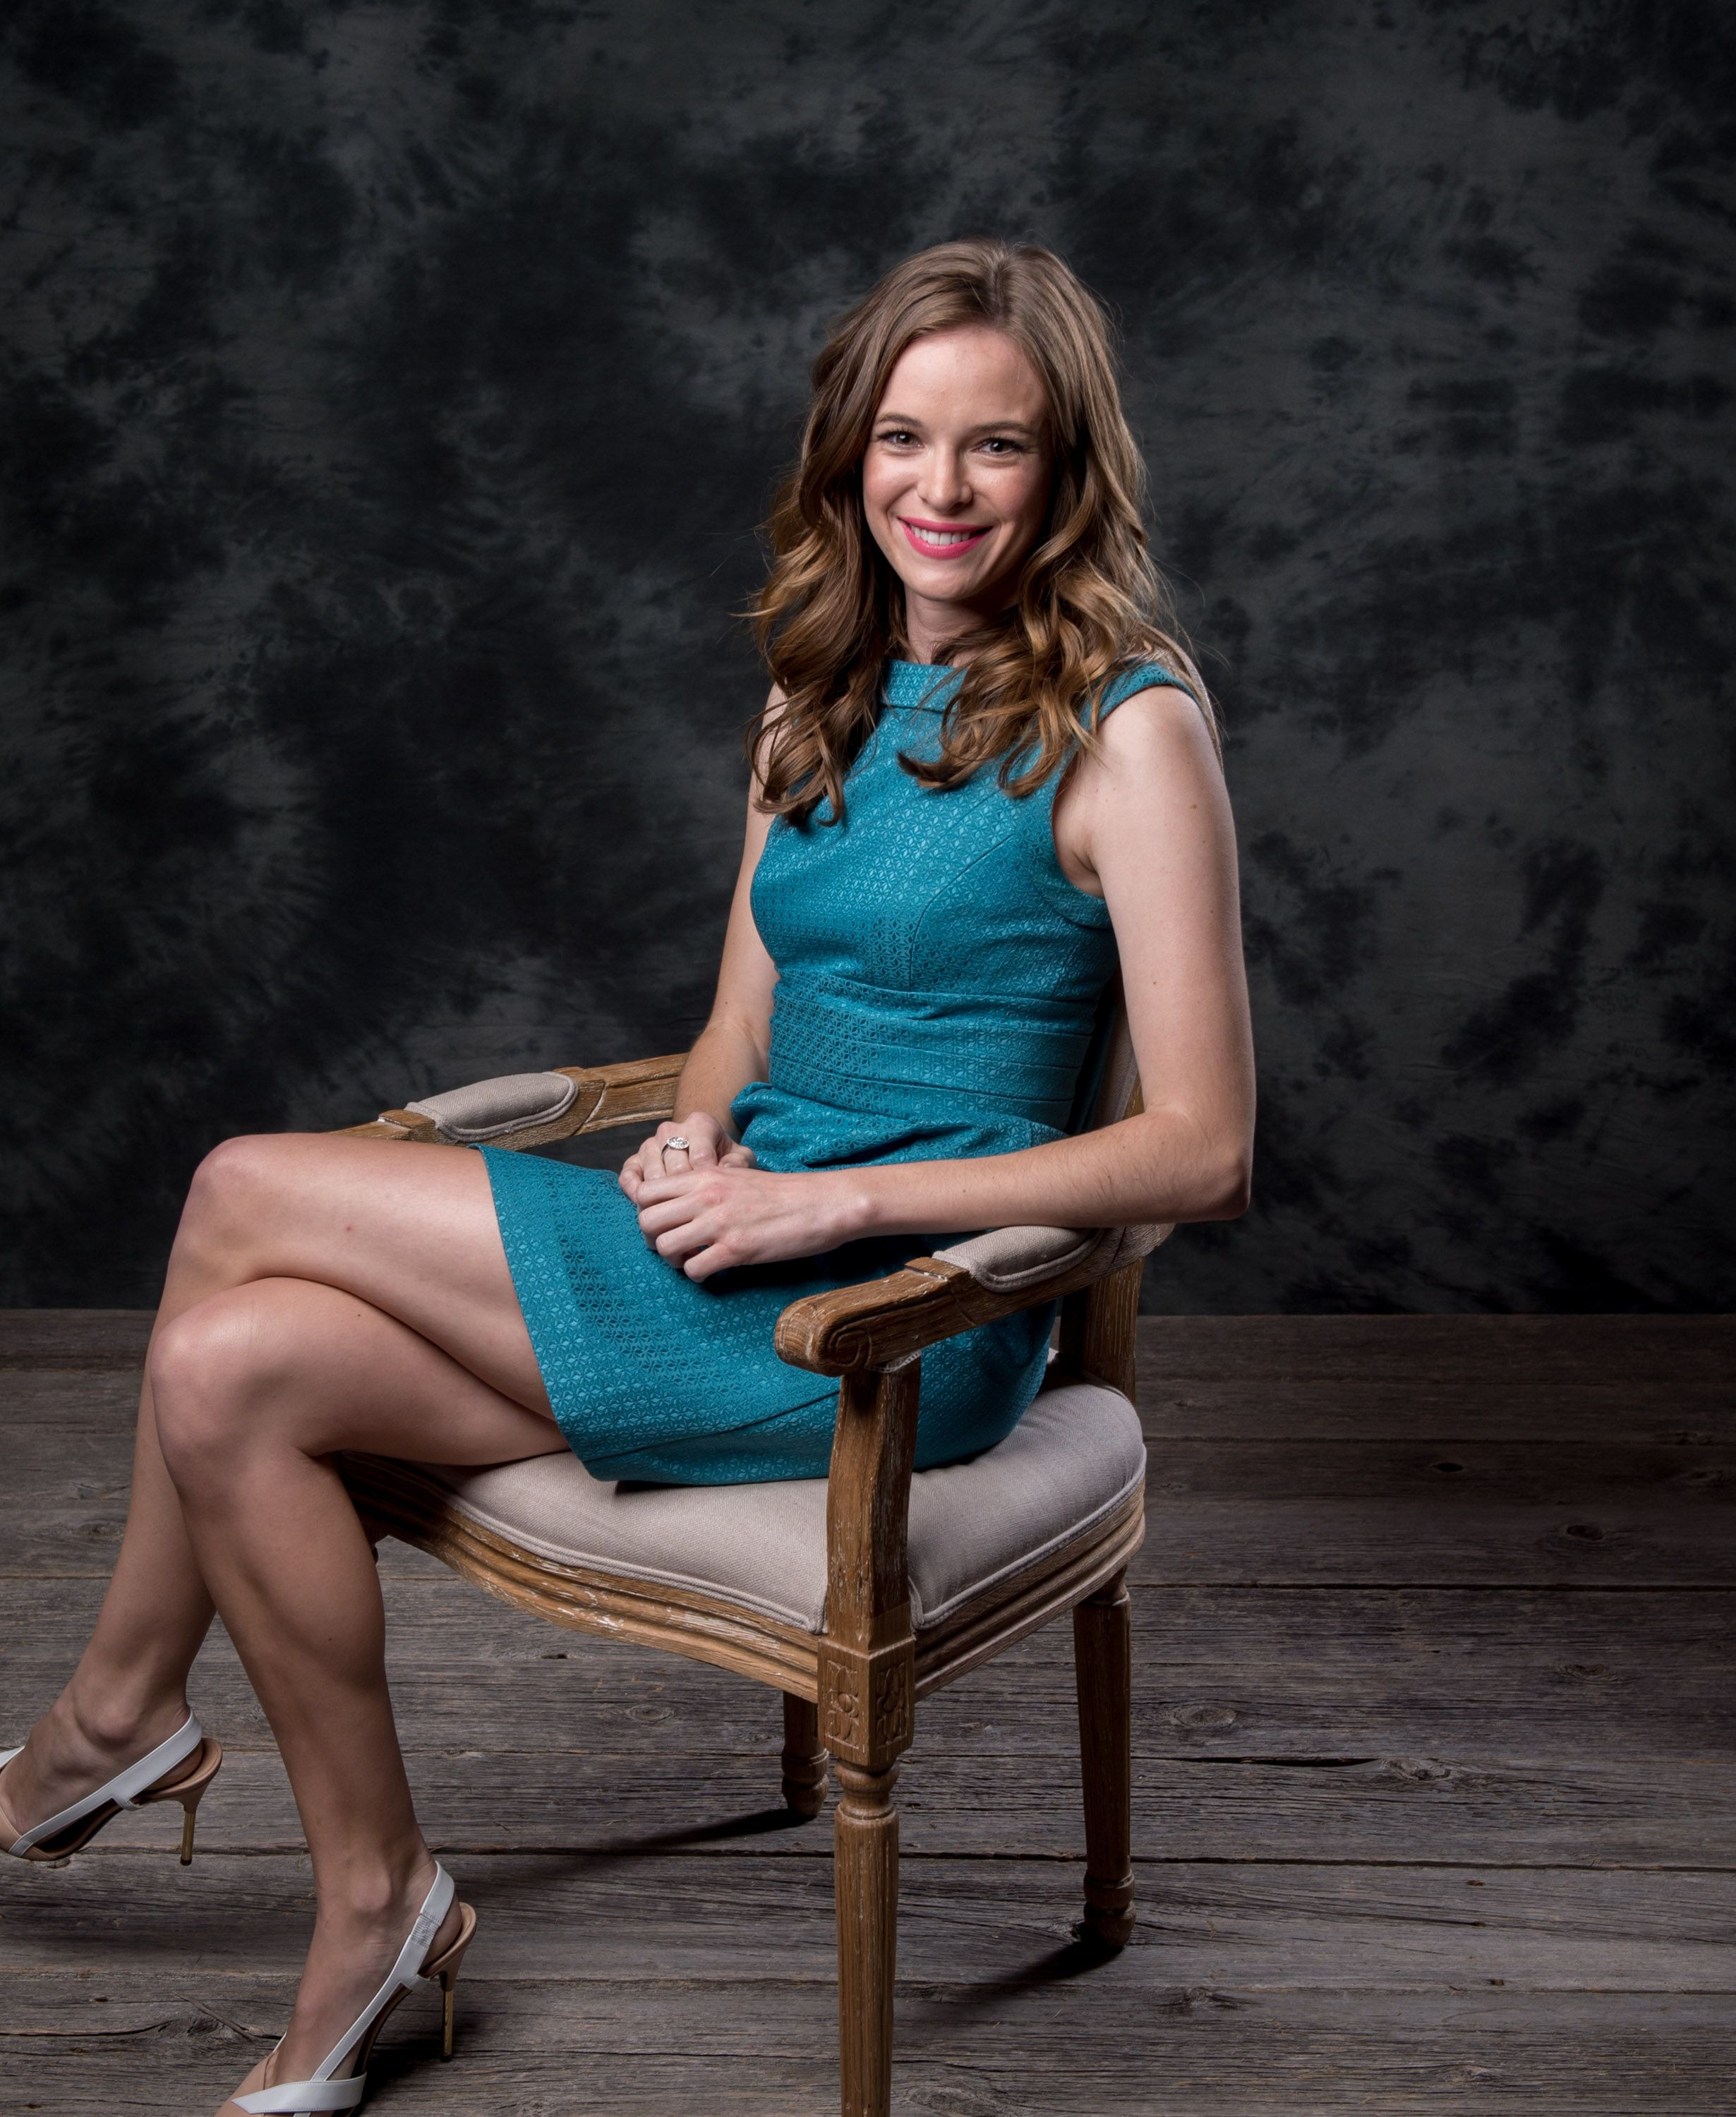 danielle panabaker site